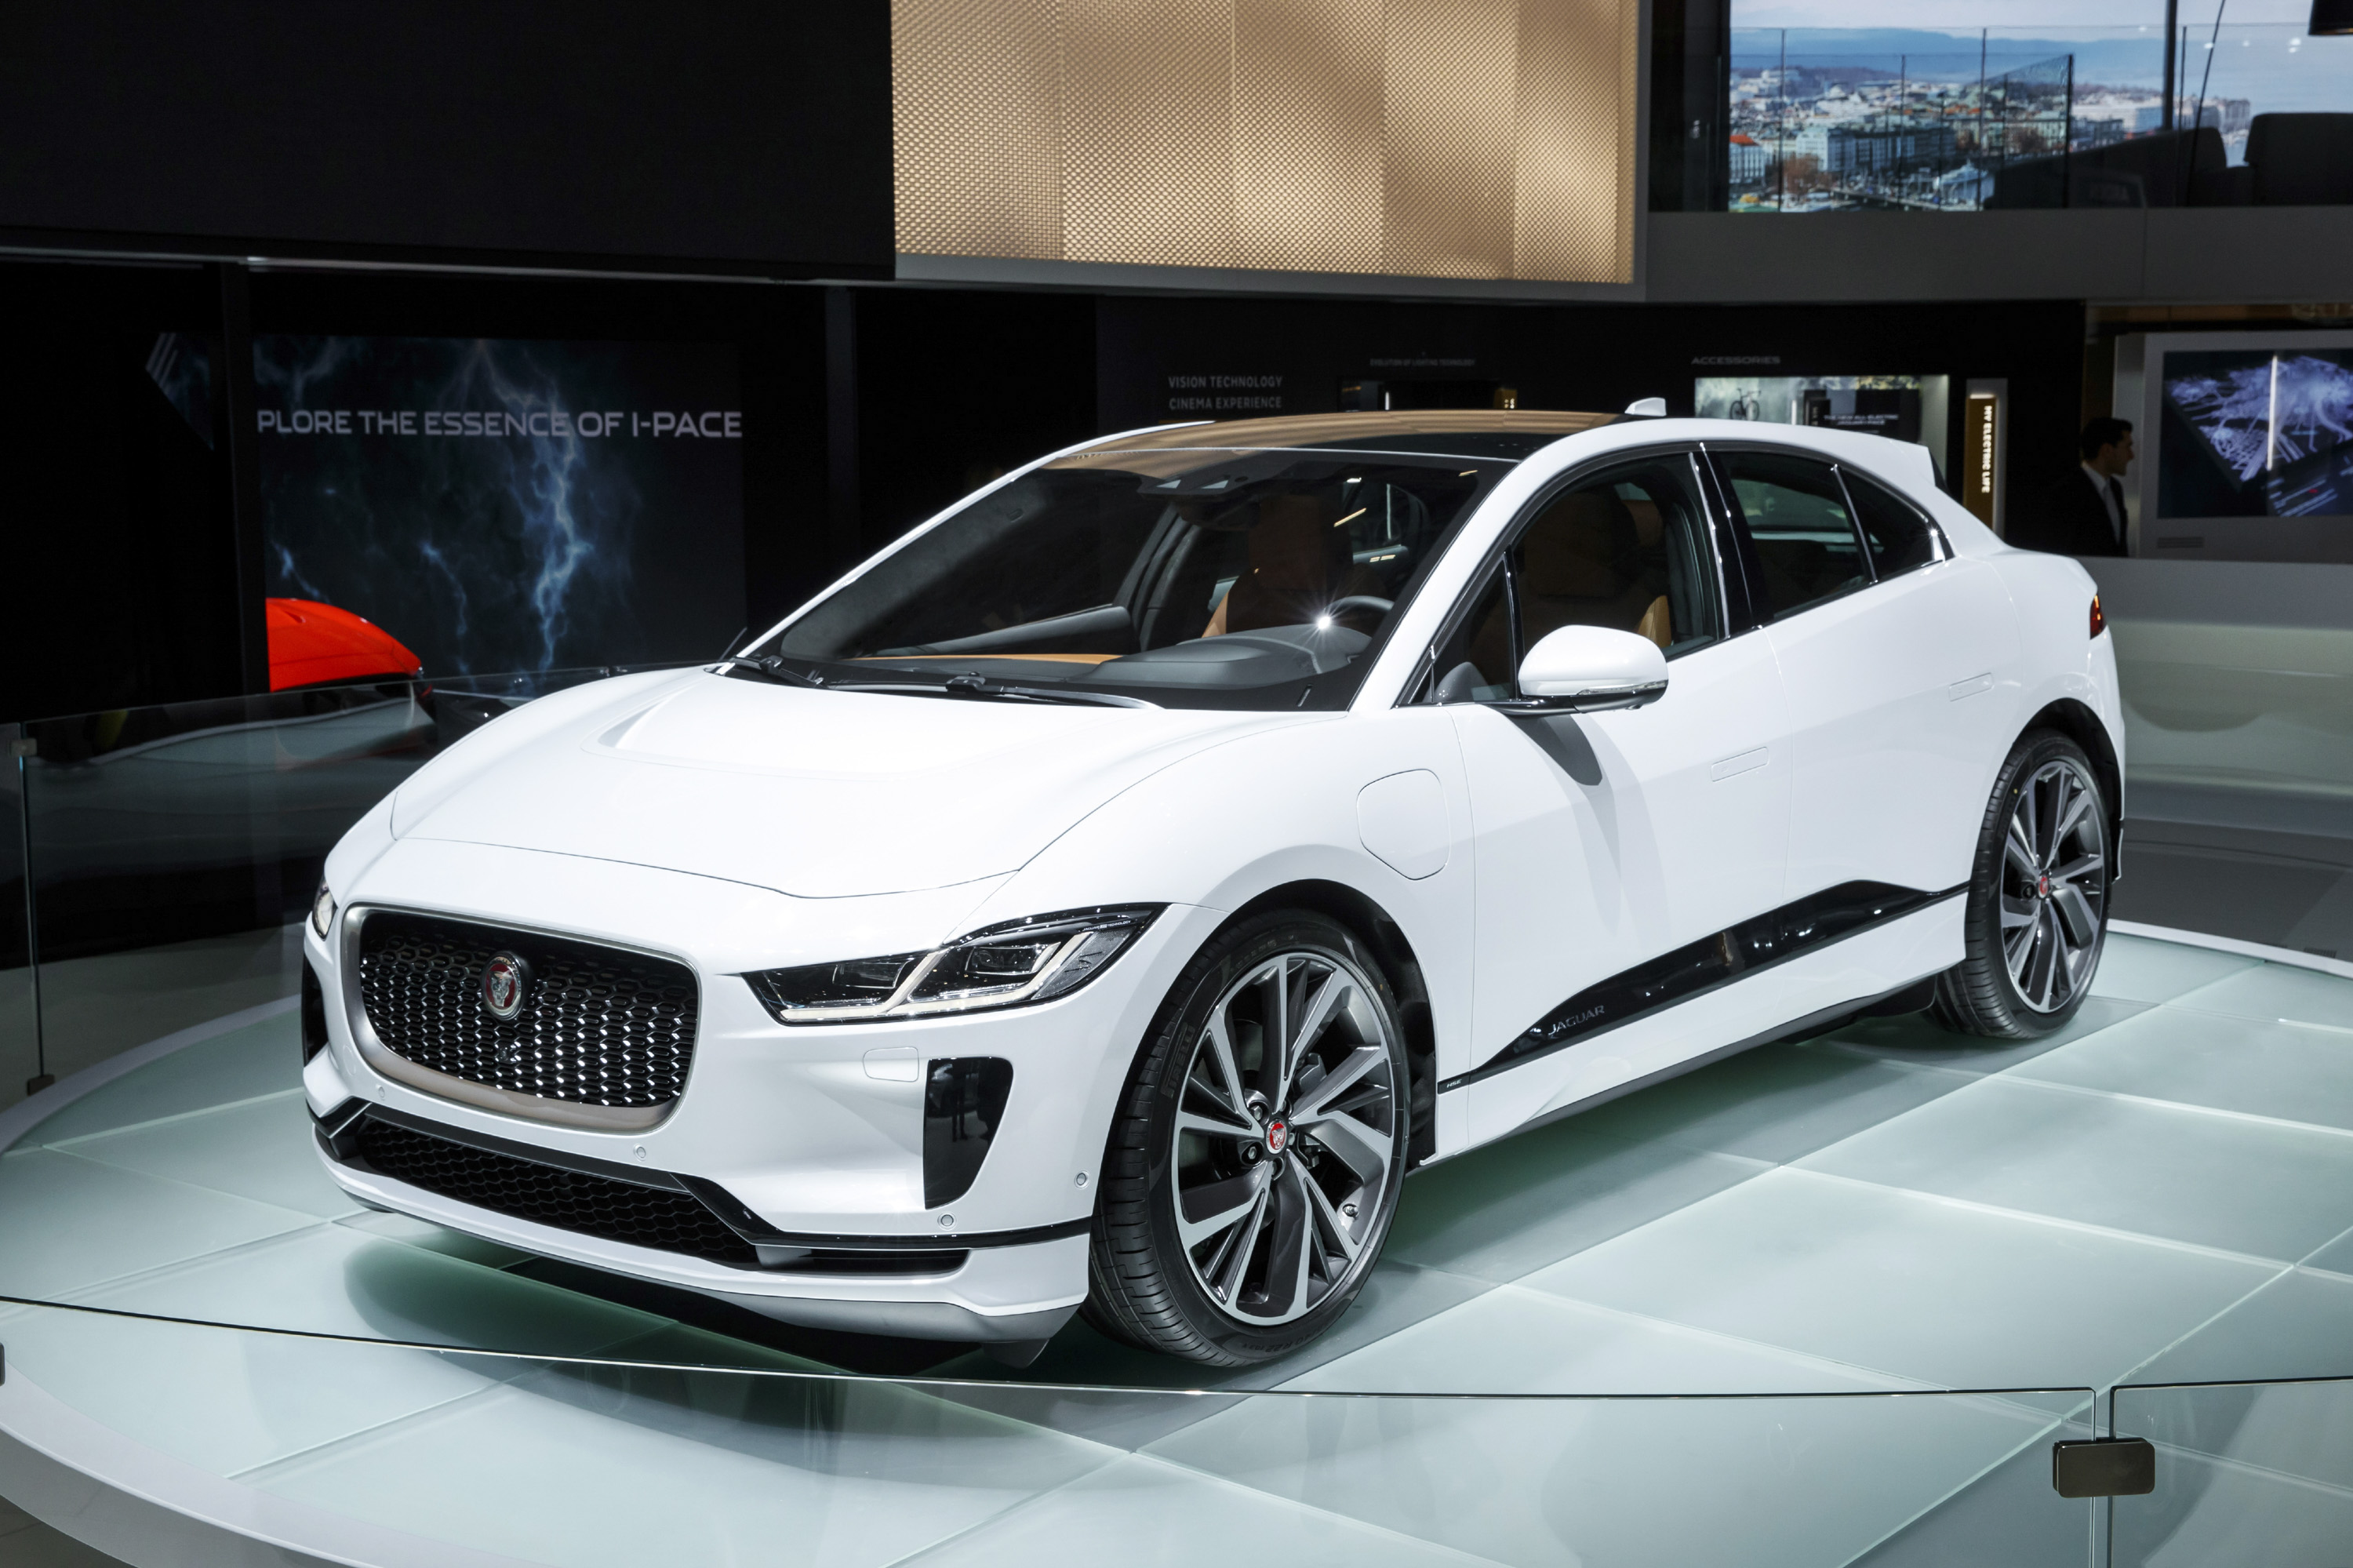 2019 Jaguar I-Pace EV: Design, Specs, Mileage, Price >> Quick Specs 2019 Jaguar I Pace Top Speed